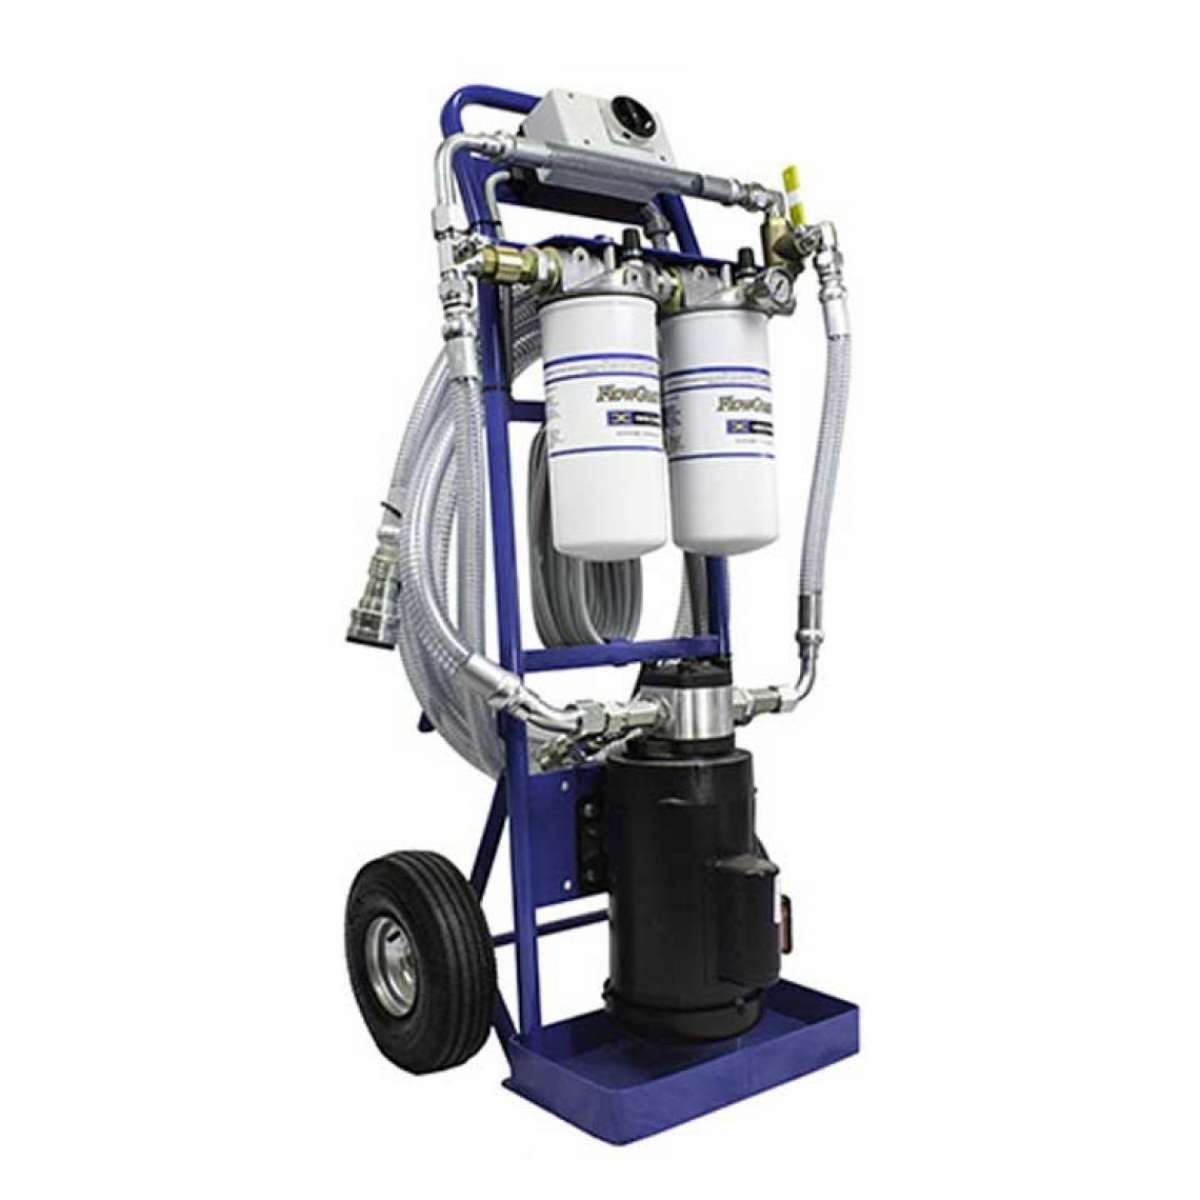 2 GPM 115 vac Dual Stage Filtration Cart 320 Viscosity - Purple